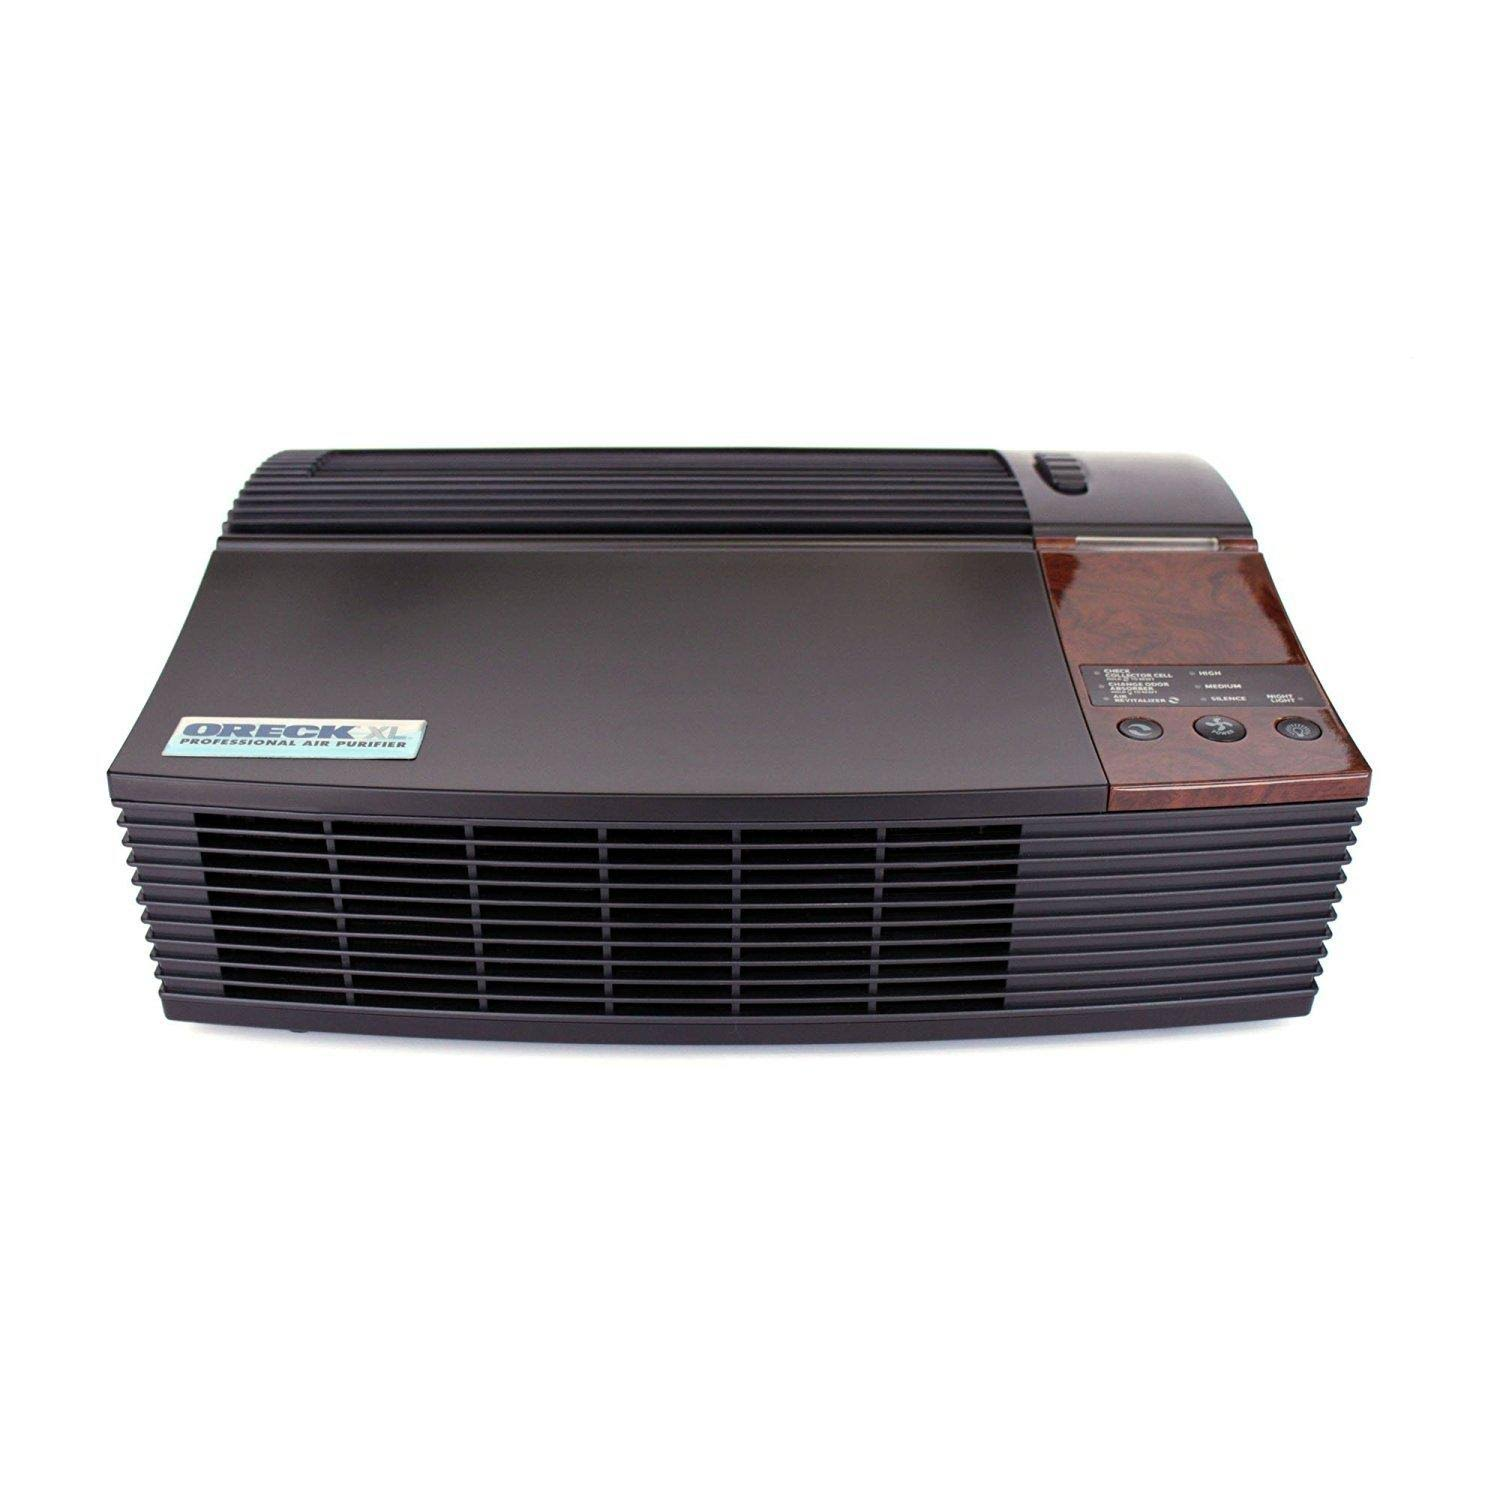 Oreck AIRPCB Professional Permanent Filter Air Purifier with Optional Ionizer and Quiet Operation Black